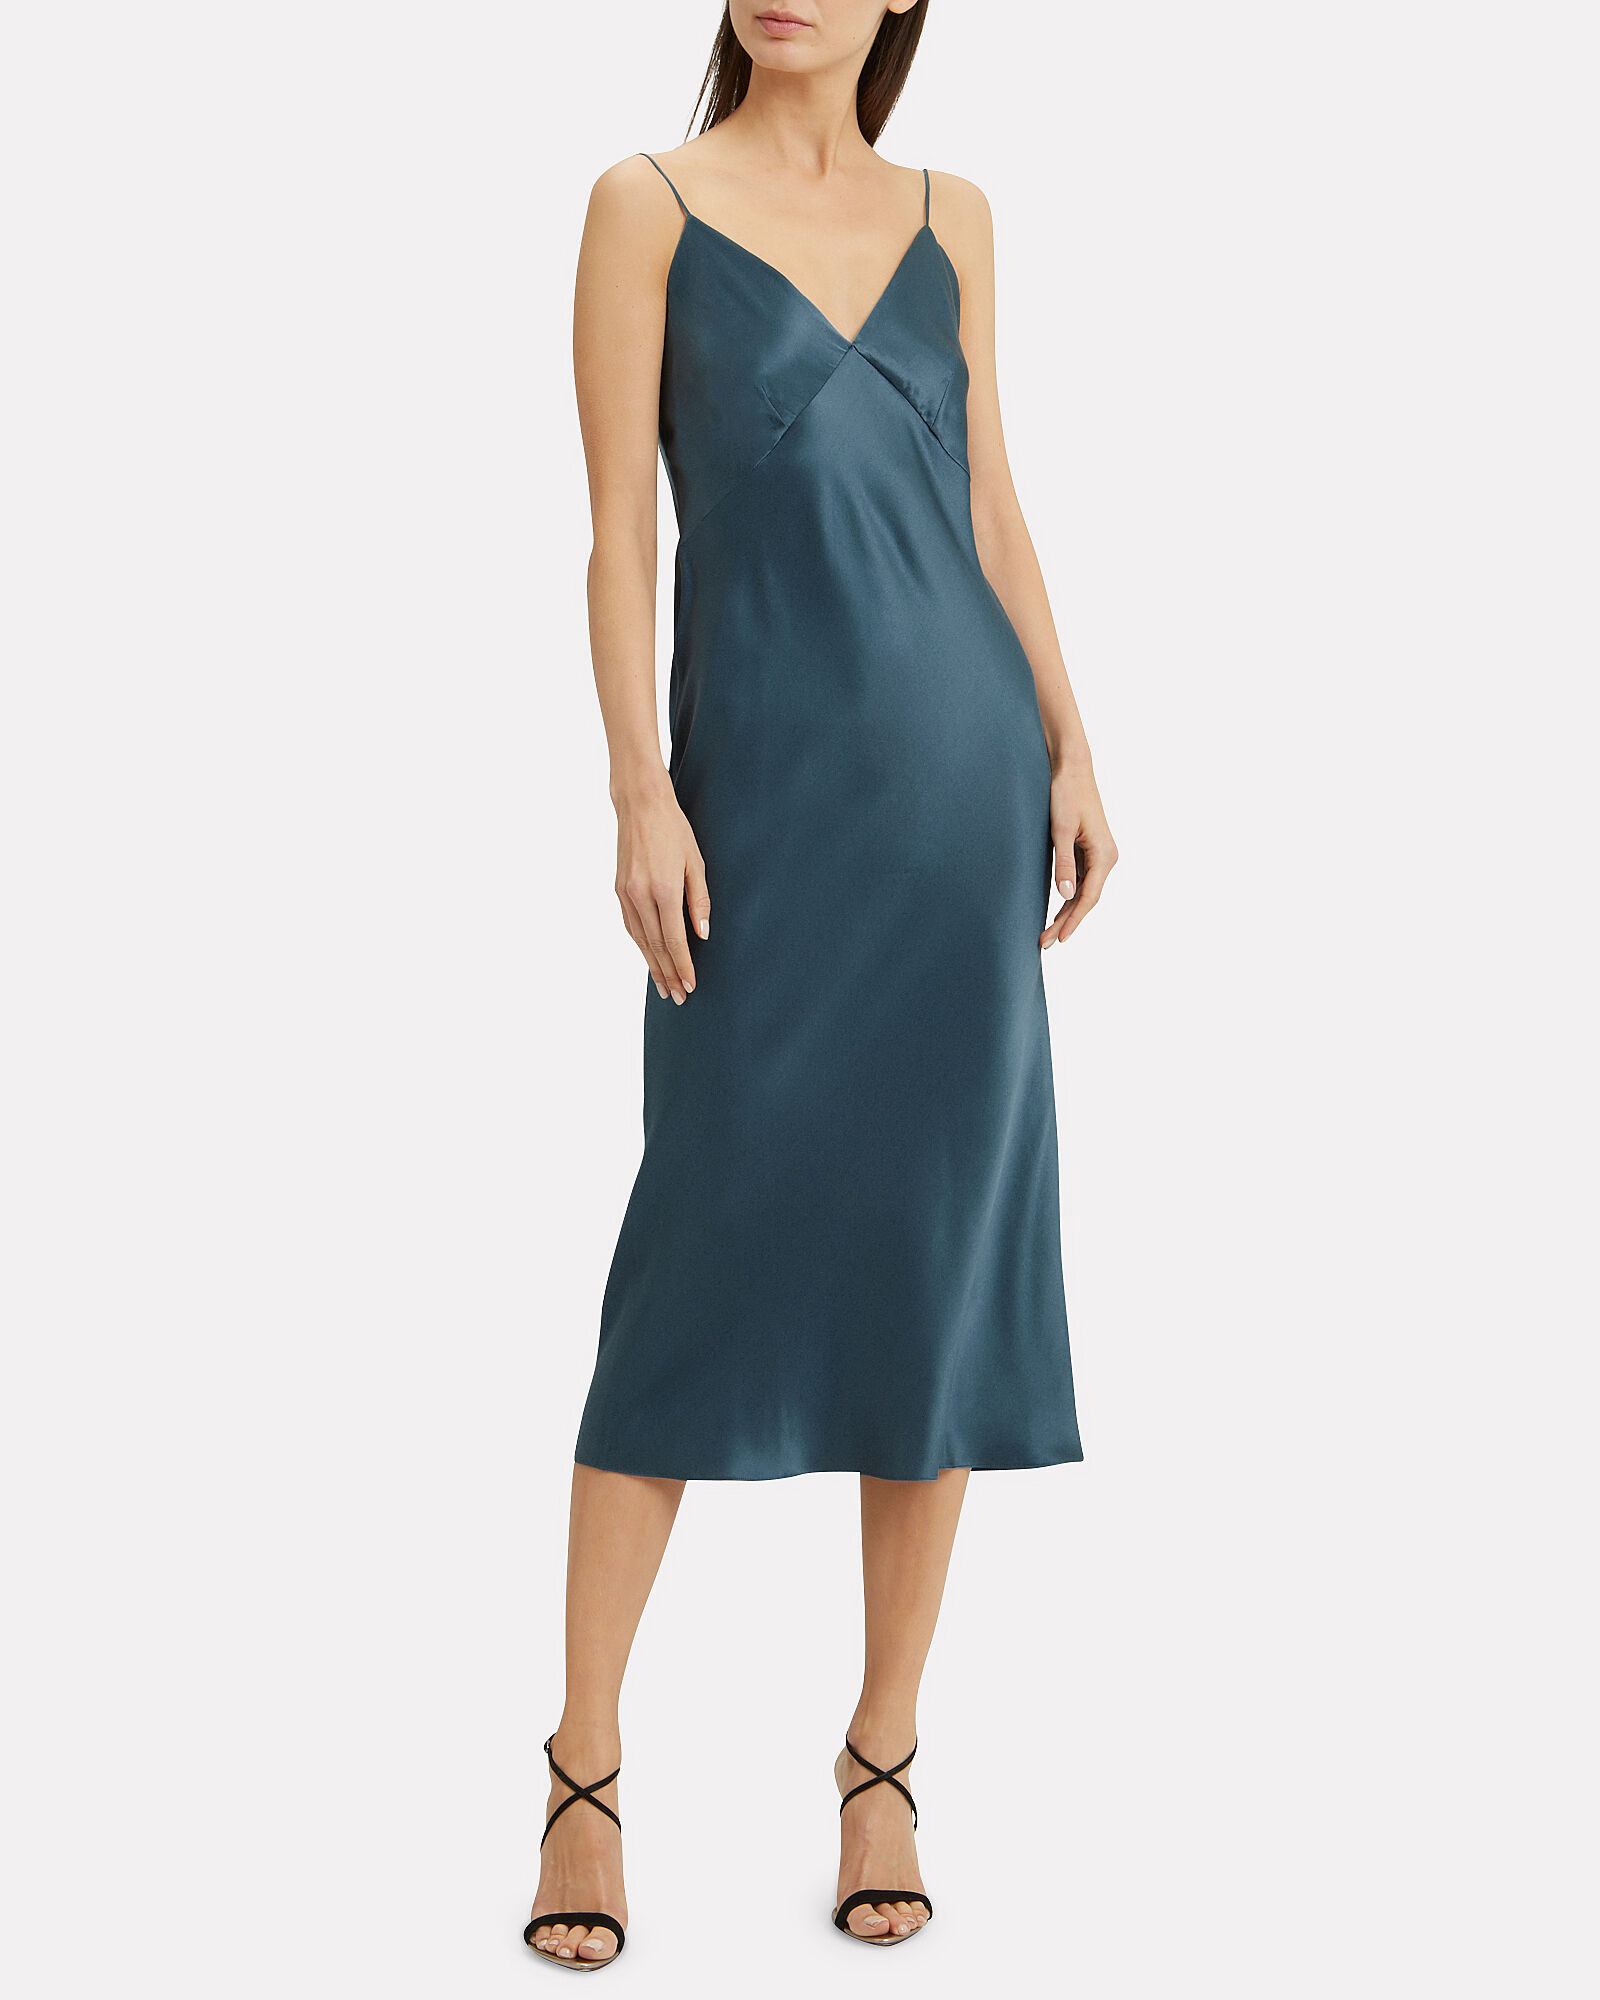 Issa Silk Slip Dress, BLUE, hi-res